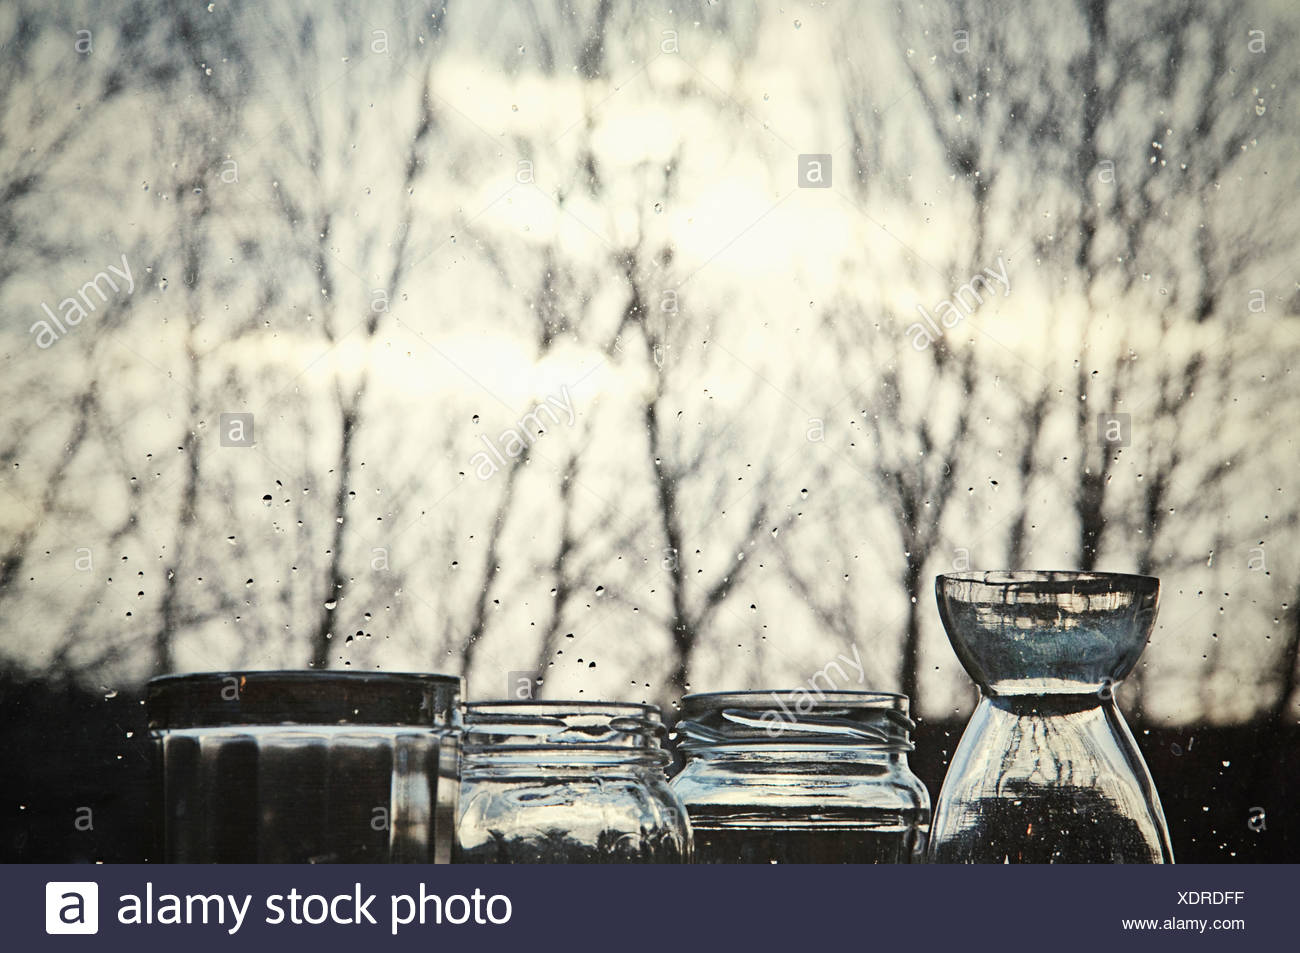 Objects outdoors in dawn - Stock Image